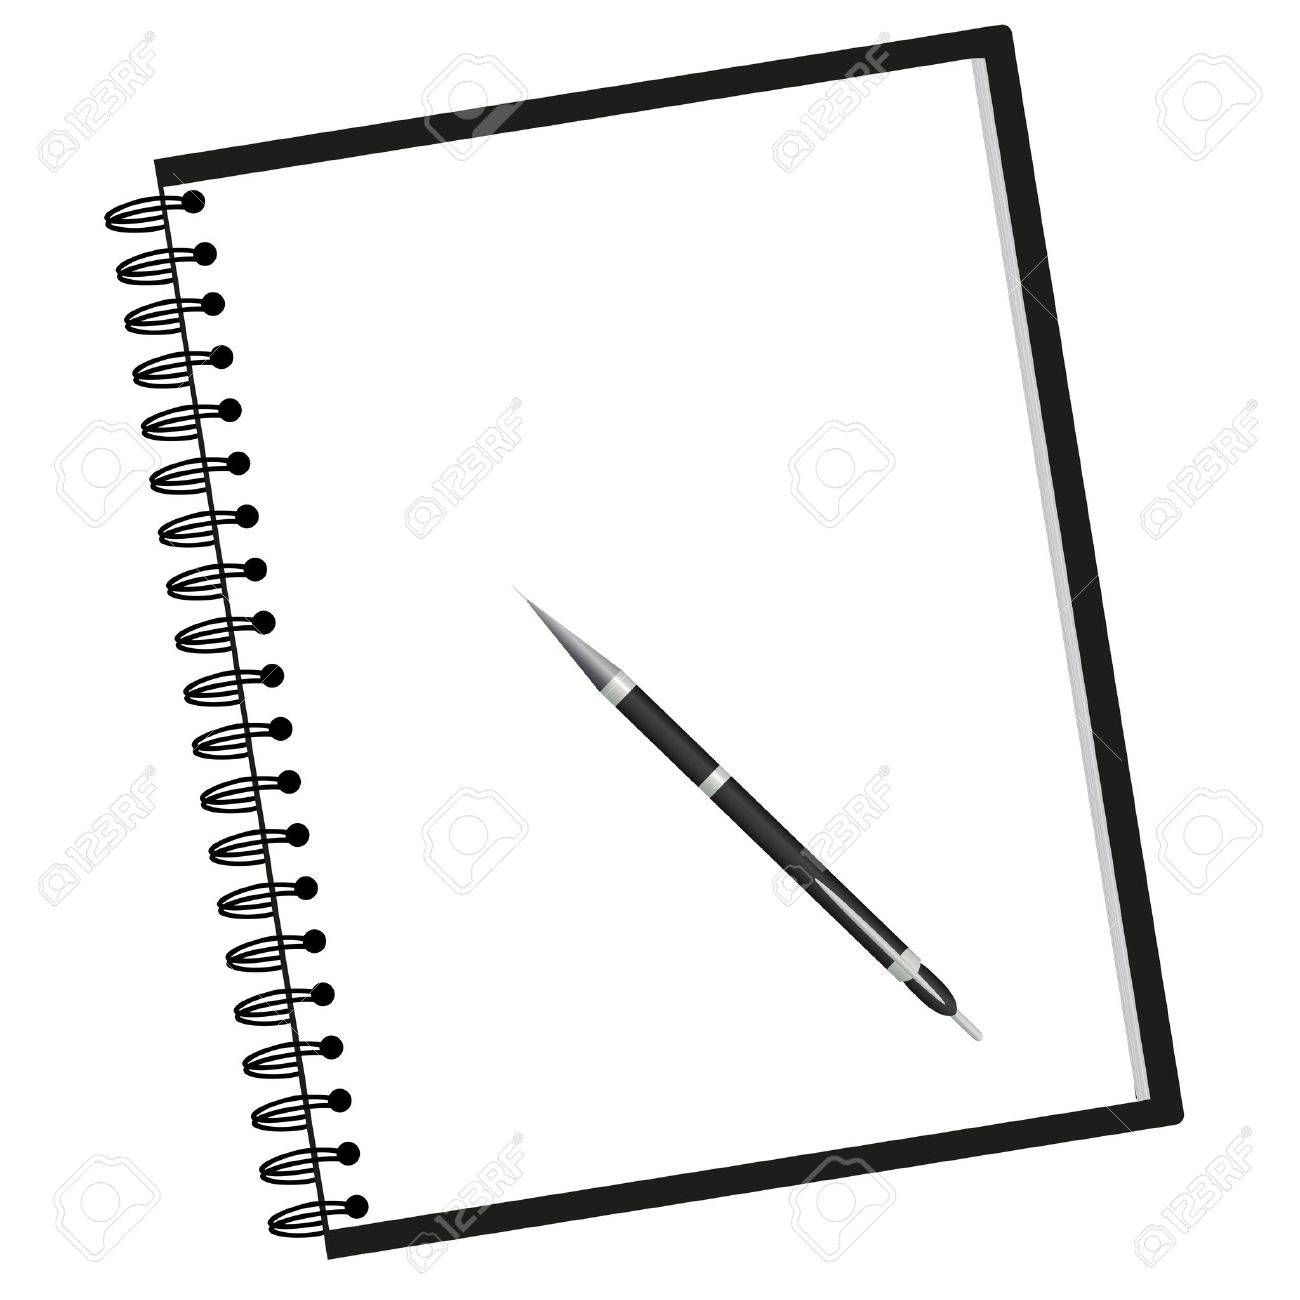 notebook and pen - 18748534